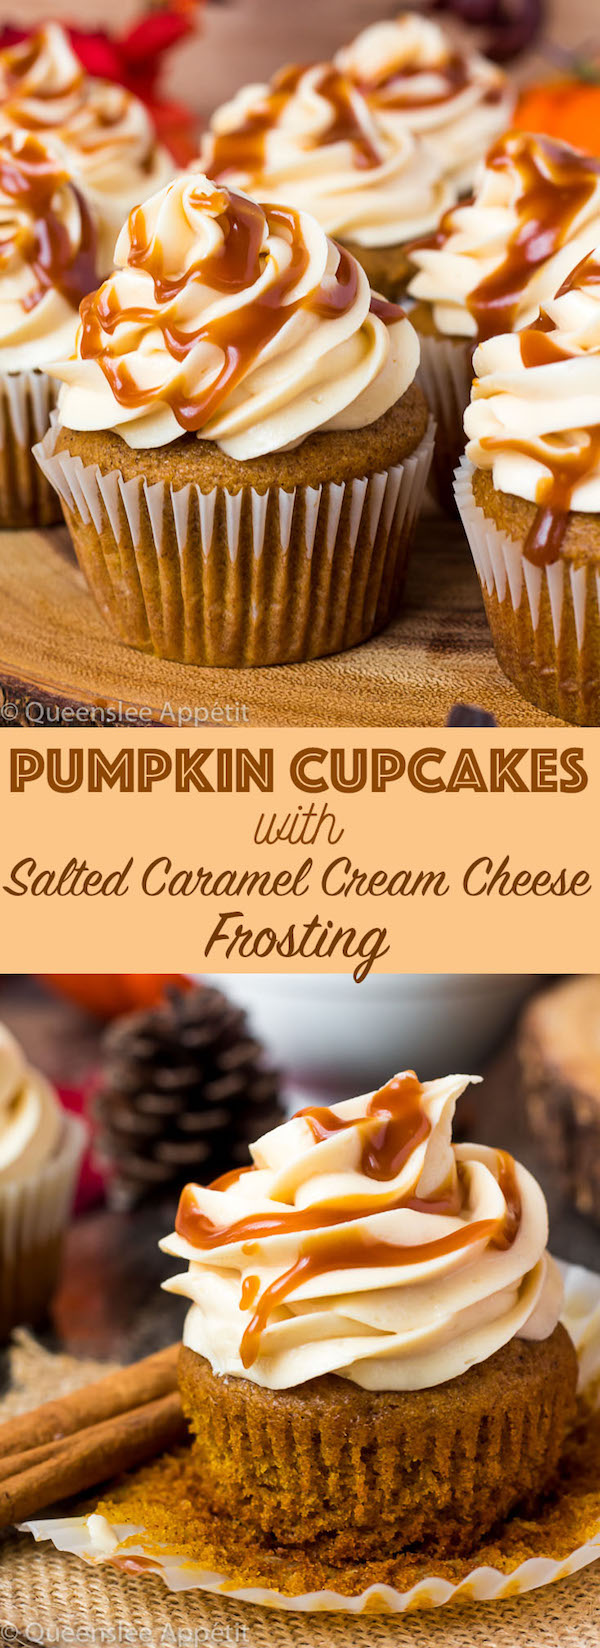 These Pumpkin Cupcakes are made with a moist pumpkin cupcake filled with salted caramel sauce and topped with a delicious Salted Caramel Cream Cheese Frosting. A perfect and fun dessert for the fall season!